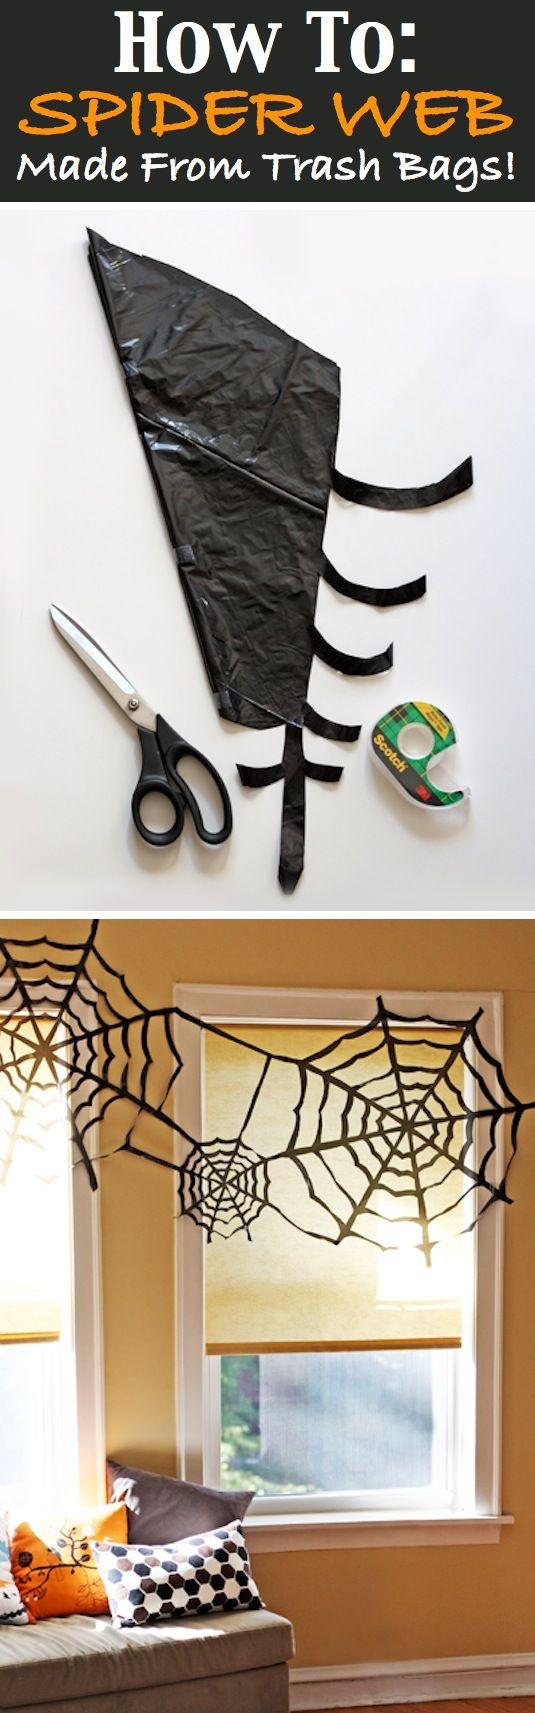 16 Easy But Awesome Homemade Halloween Decorations~T~ Some clever ideas.